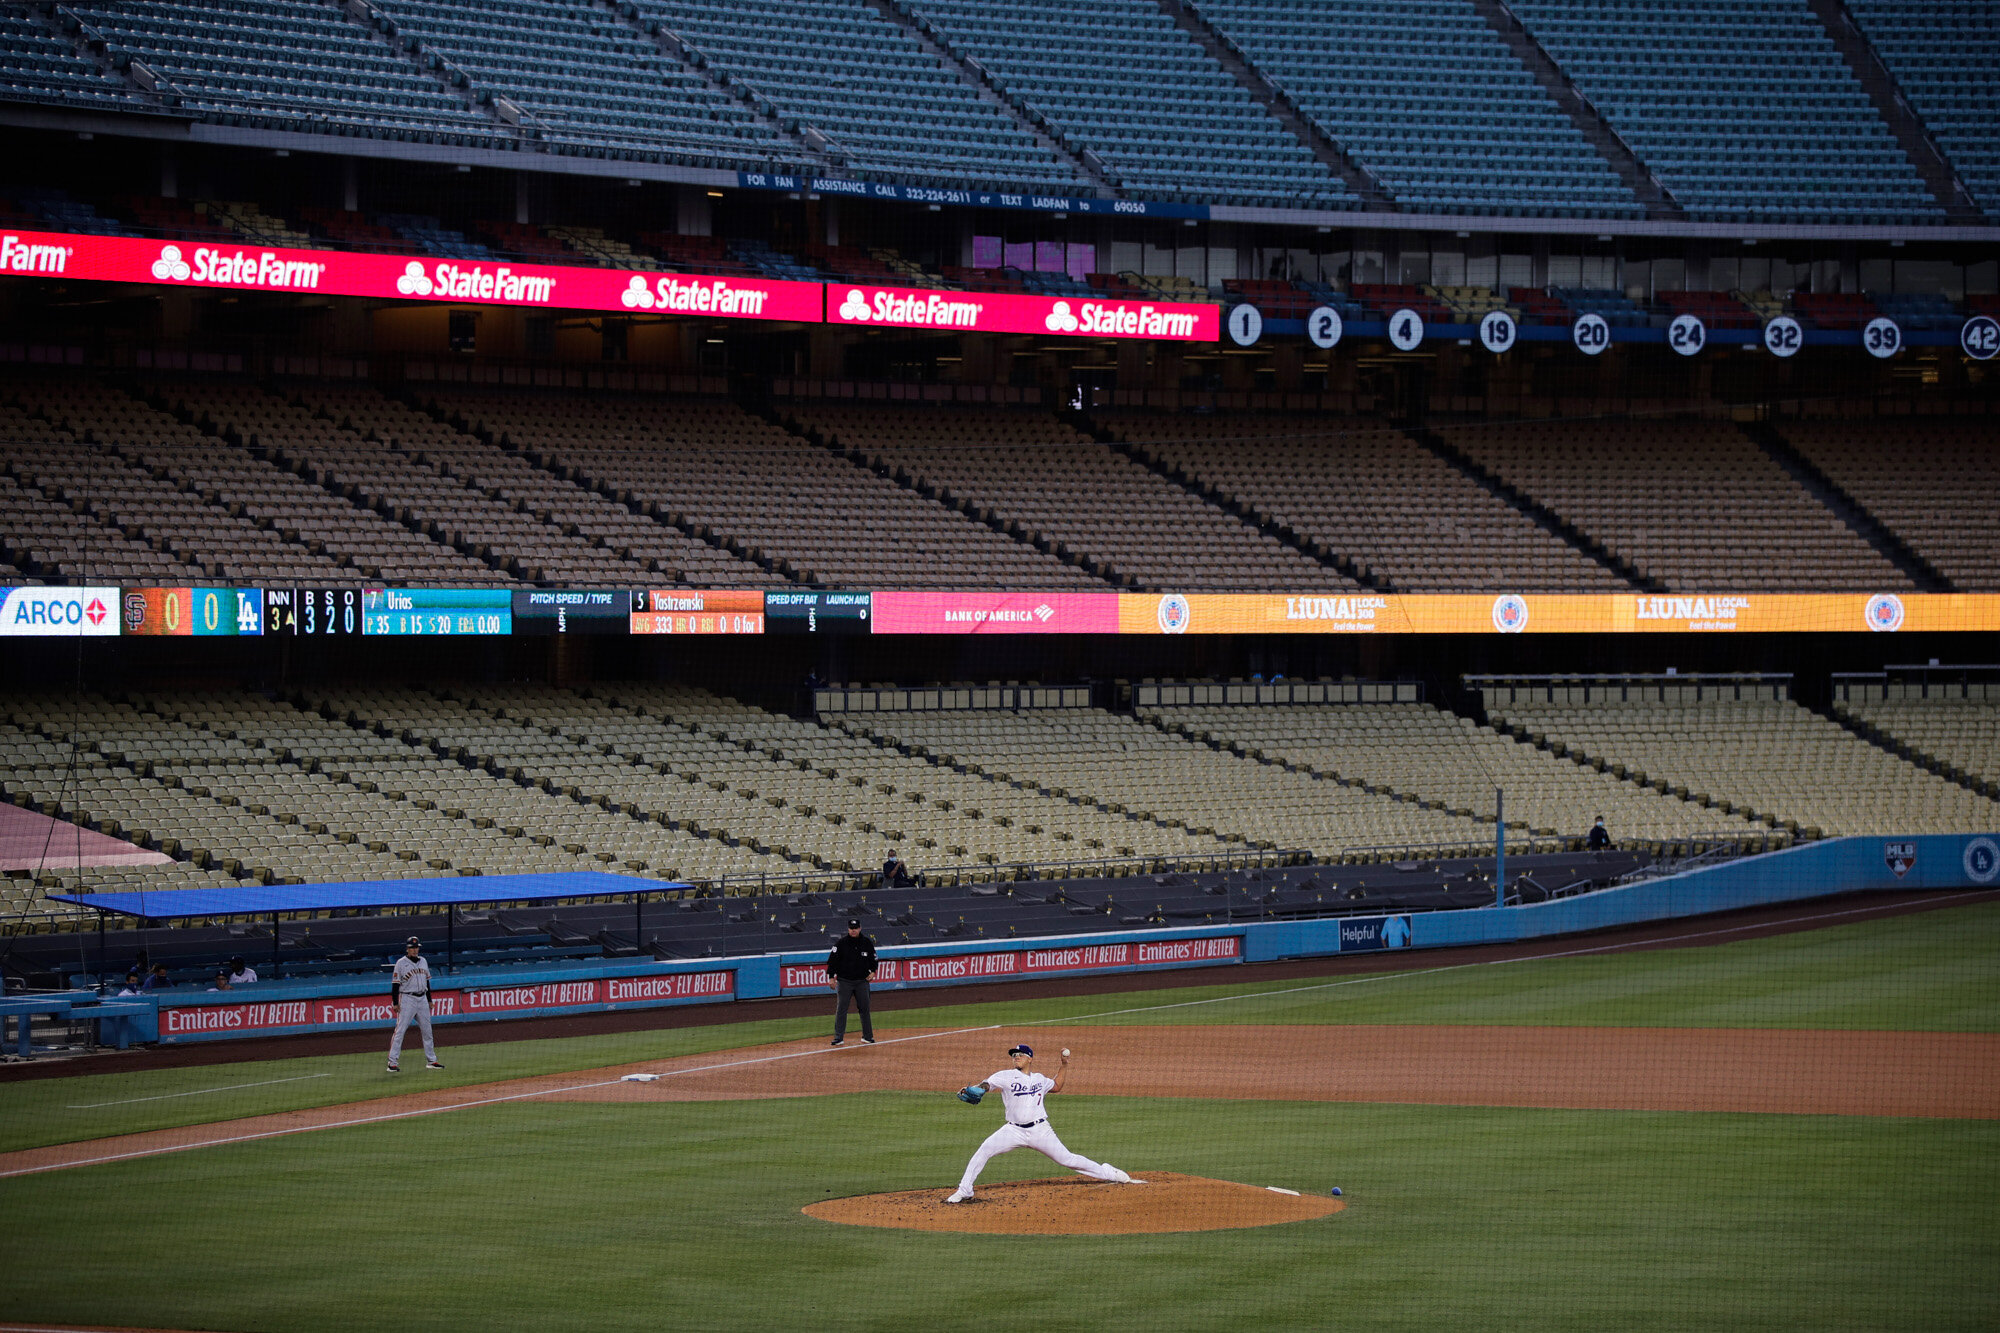 With the seats at Dodger Stadium empty, Los Angeles Dodgers starting pitcher Julio Urias throws to a San Francisco Giants batter during the third inning of a baseball game on July 26, 2020, in Los Angeles. (AP Photo/Jae C. Hong)